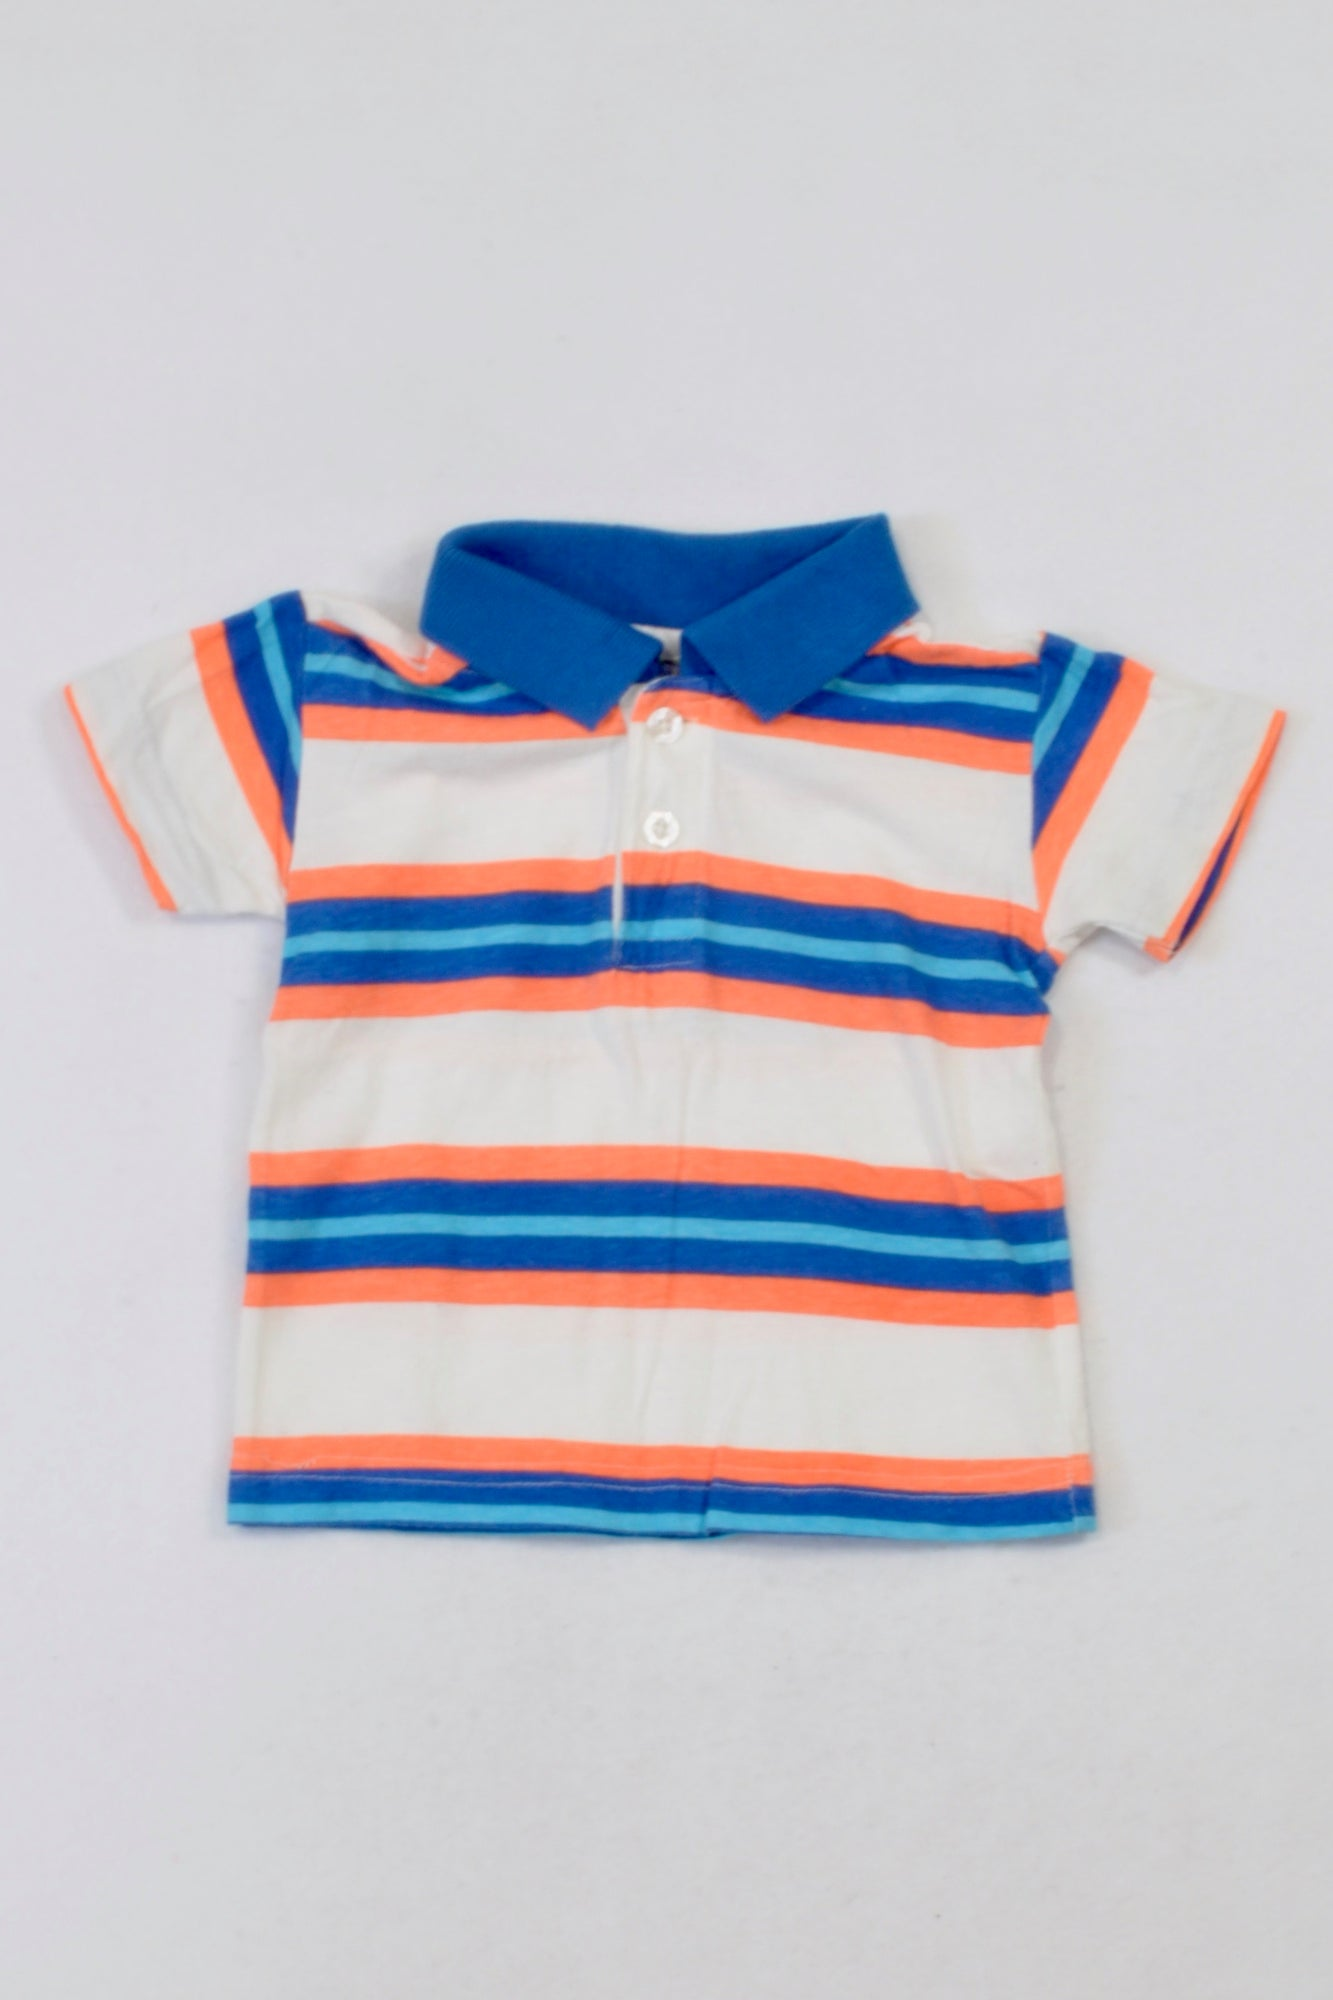 Ackermans Blue & Orange Golf Shirt Boys 3-6 months